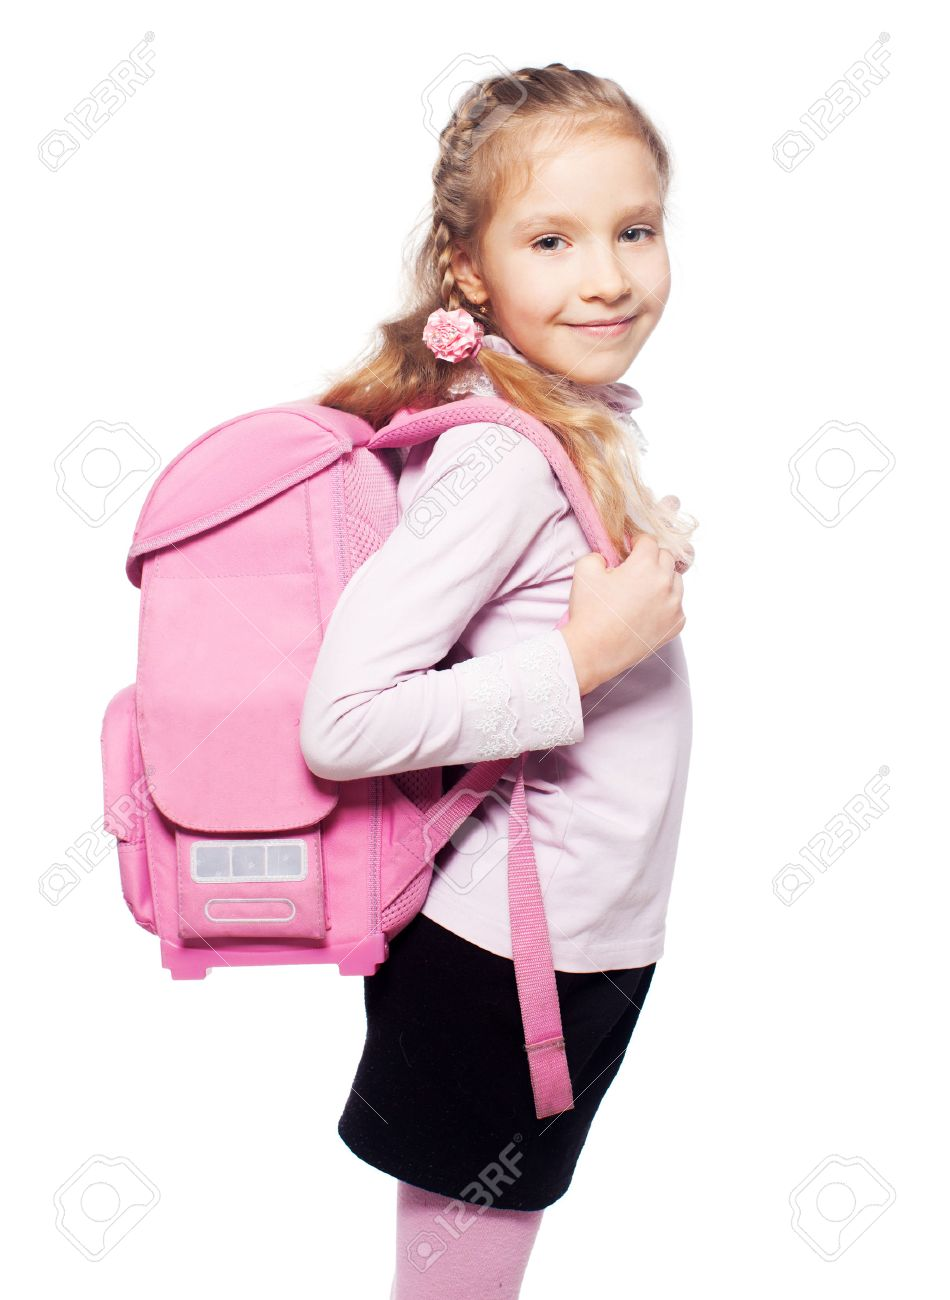 School bag for girl - Child With Schoolbag Girl With School Bag Isolated On White Stock Photo 29031668